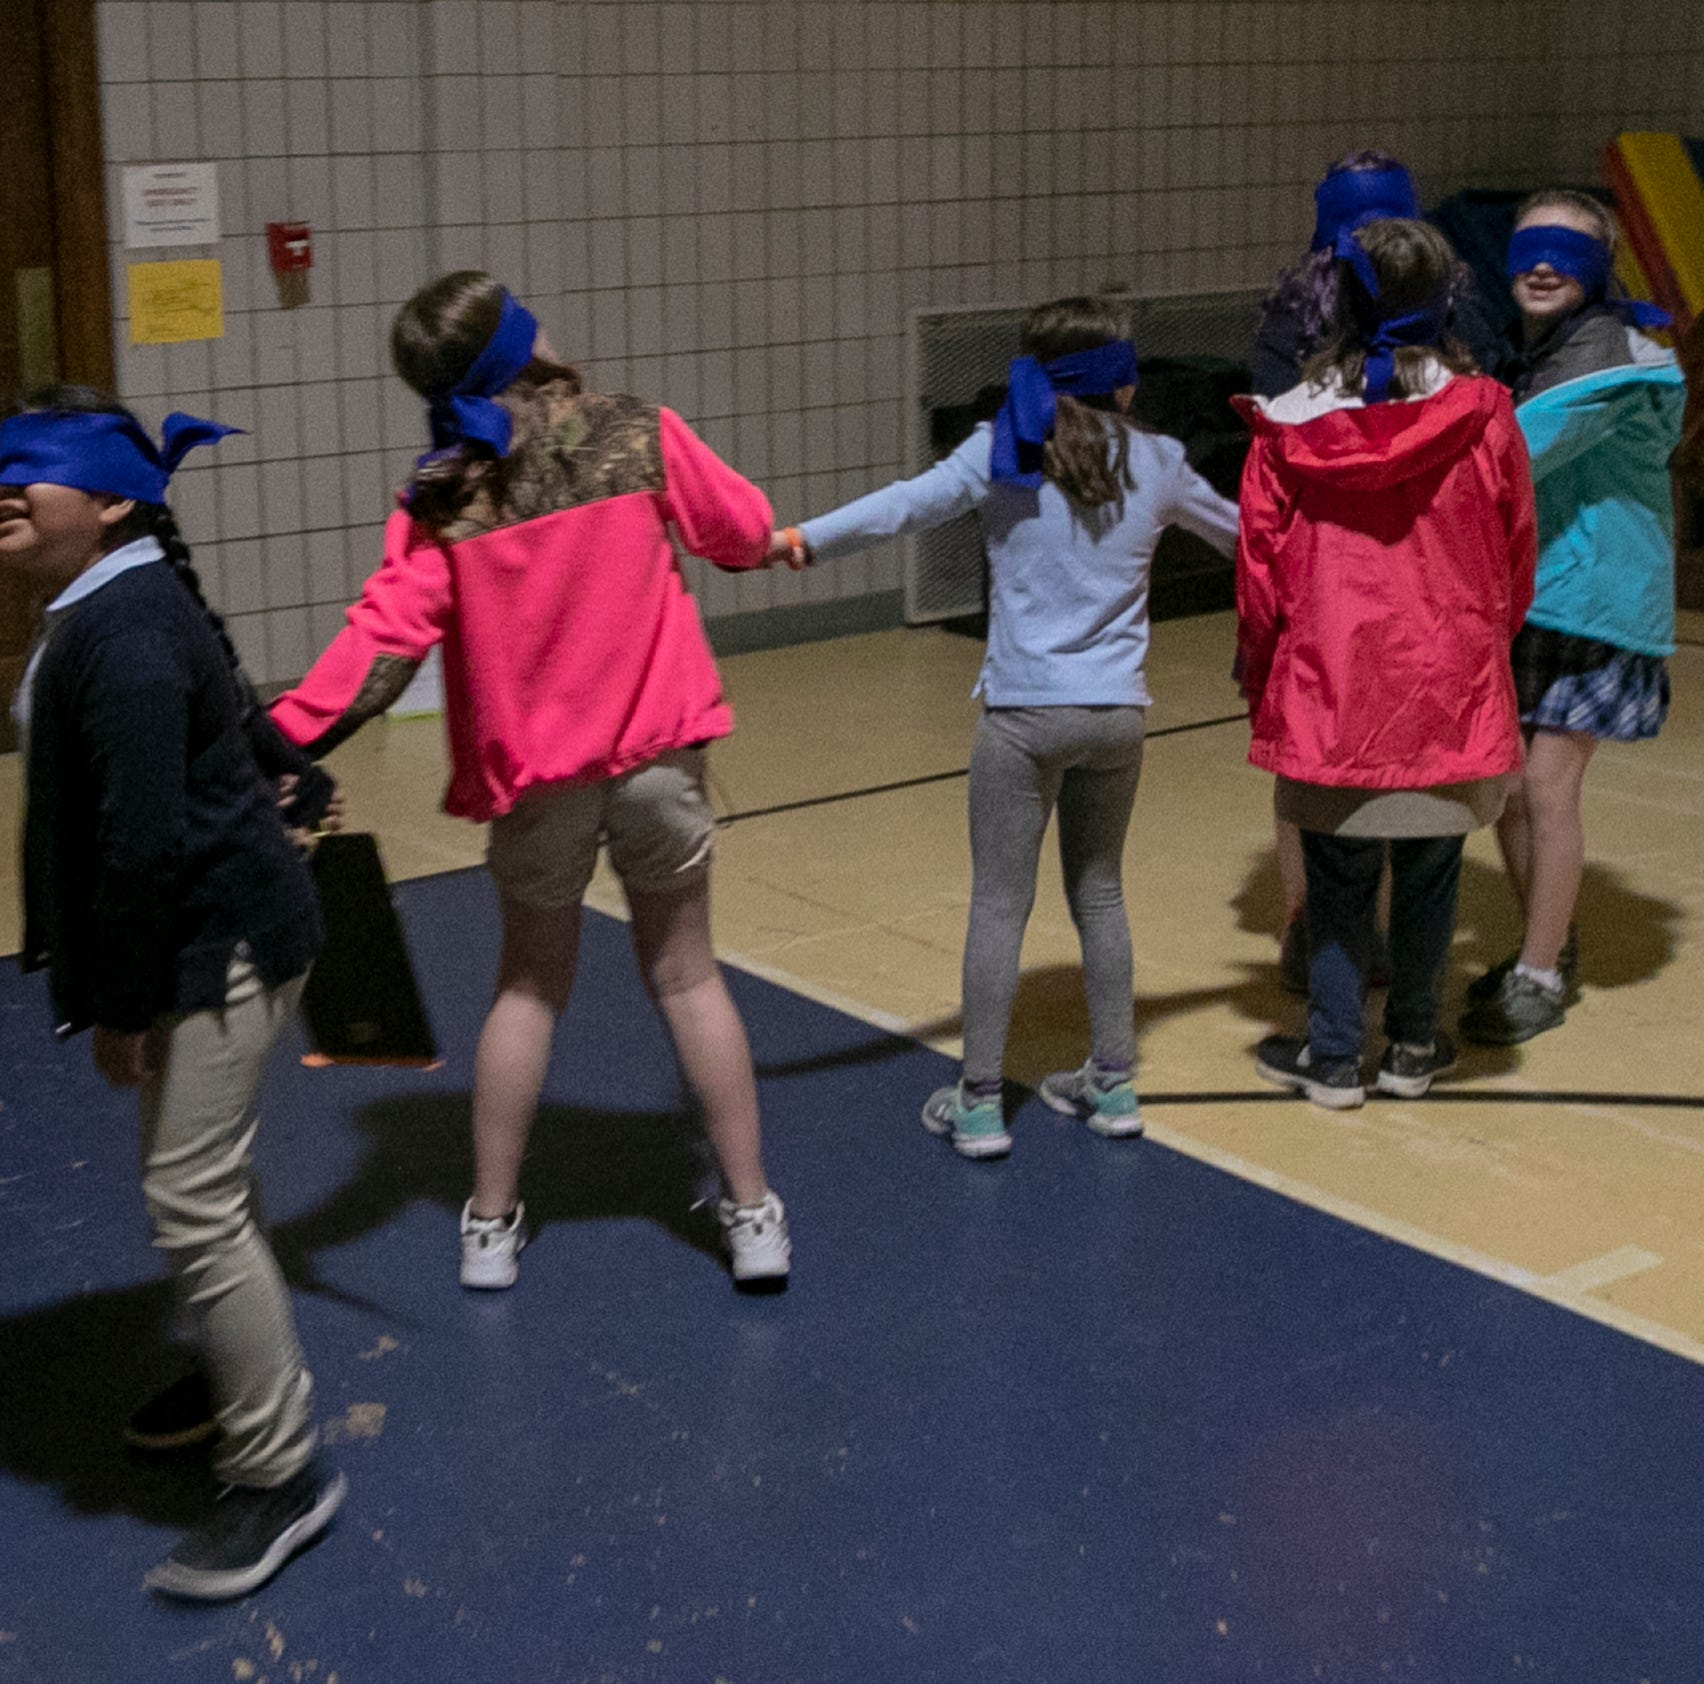 Soaked, blindfolded and fenced in: Refugee simulation builds empathy for Indy students